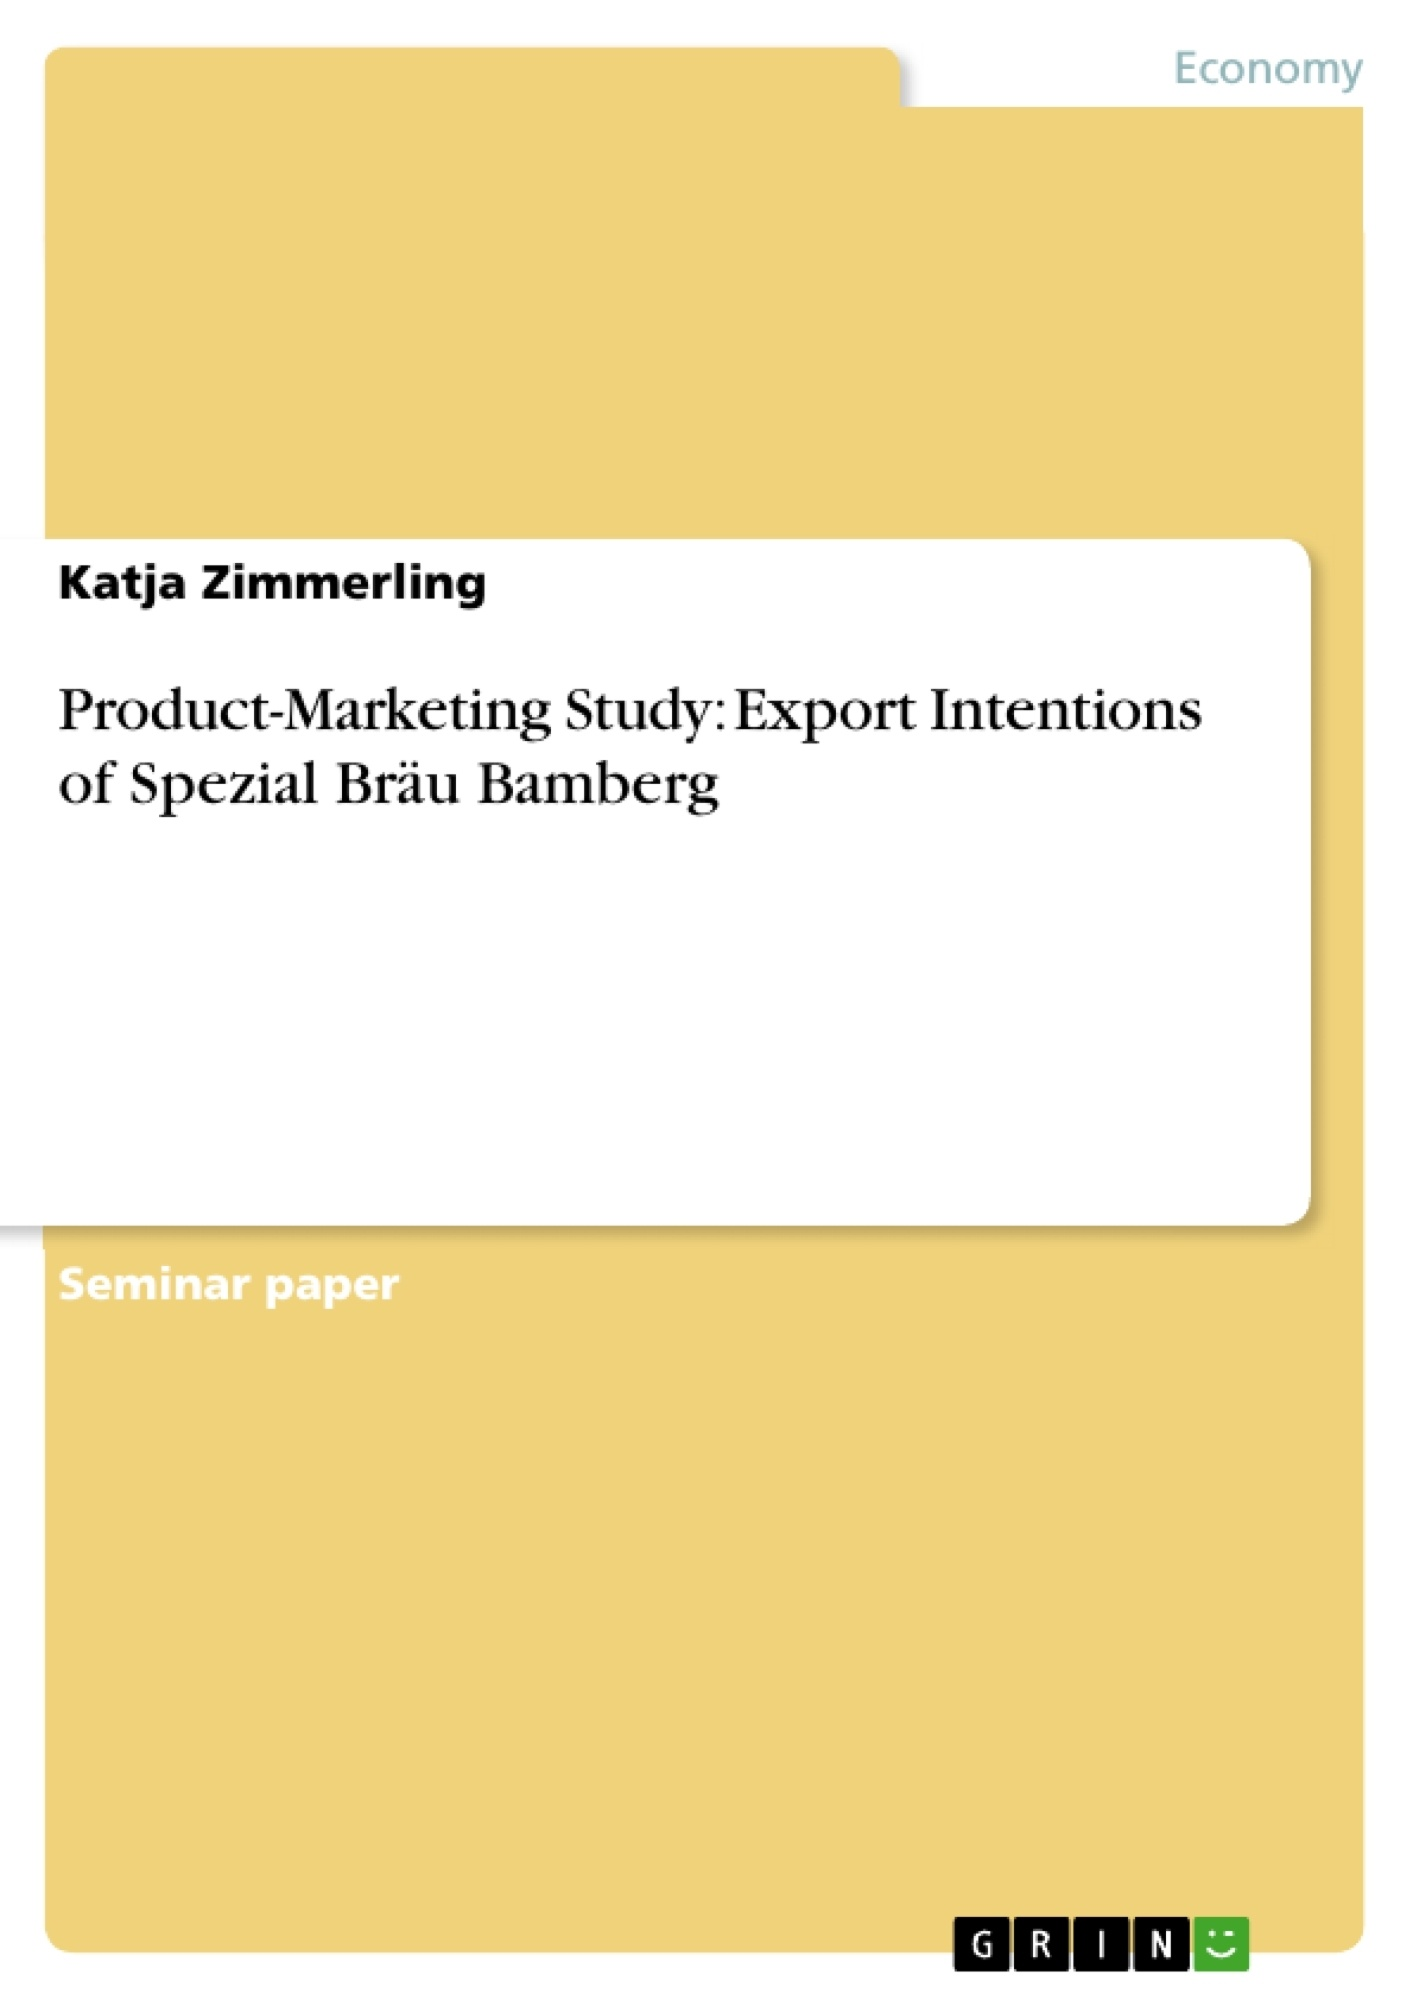 Title: Product-Marketing Study: Export Intentions of Spezial Bräu Bamberg